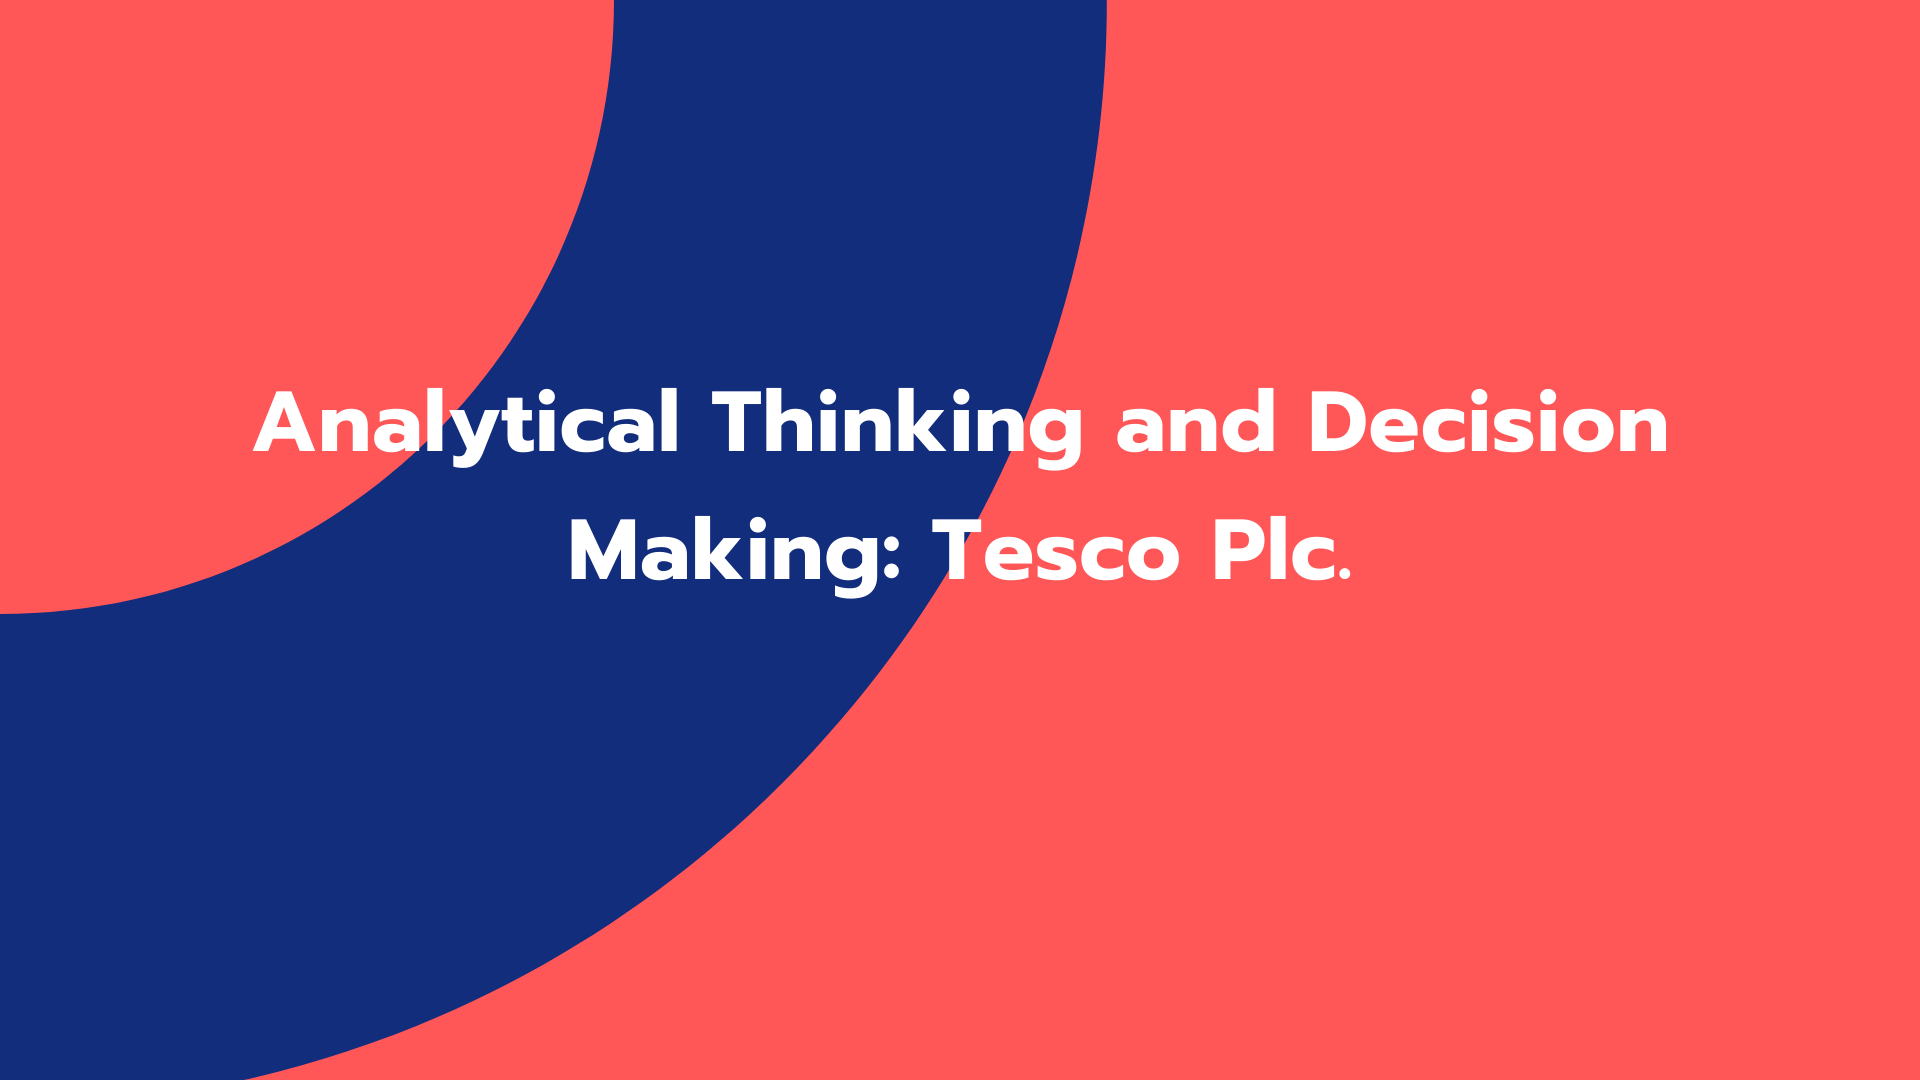 Analytical Thinking and Decision Making: Tesco Plc.